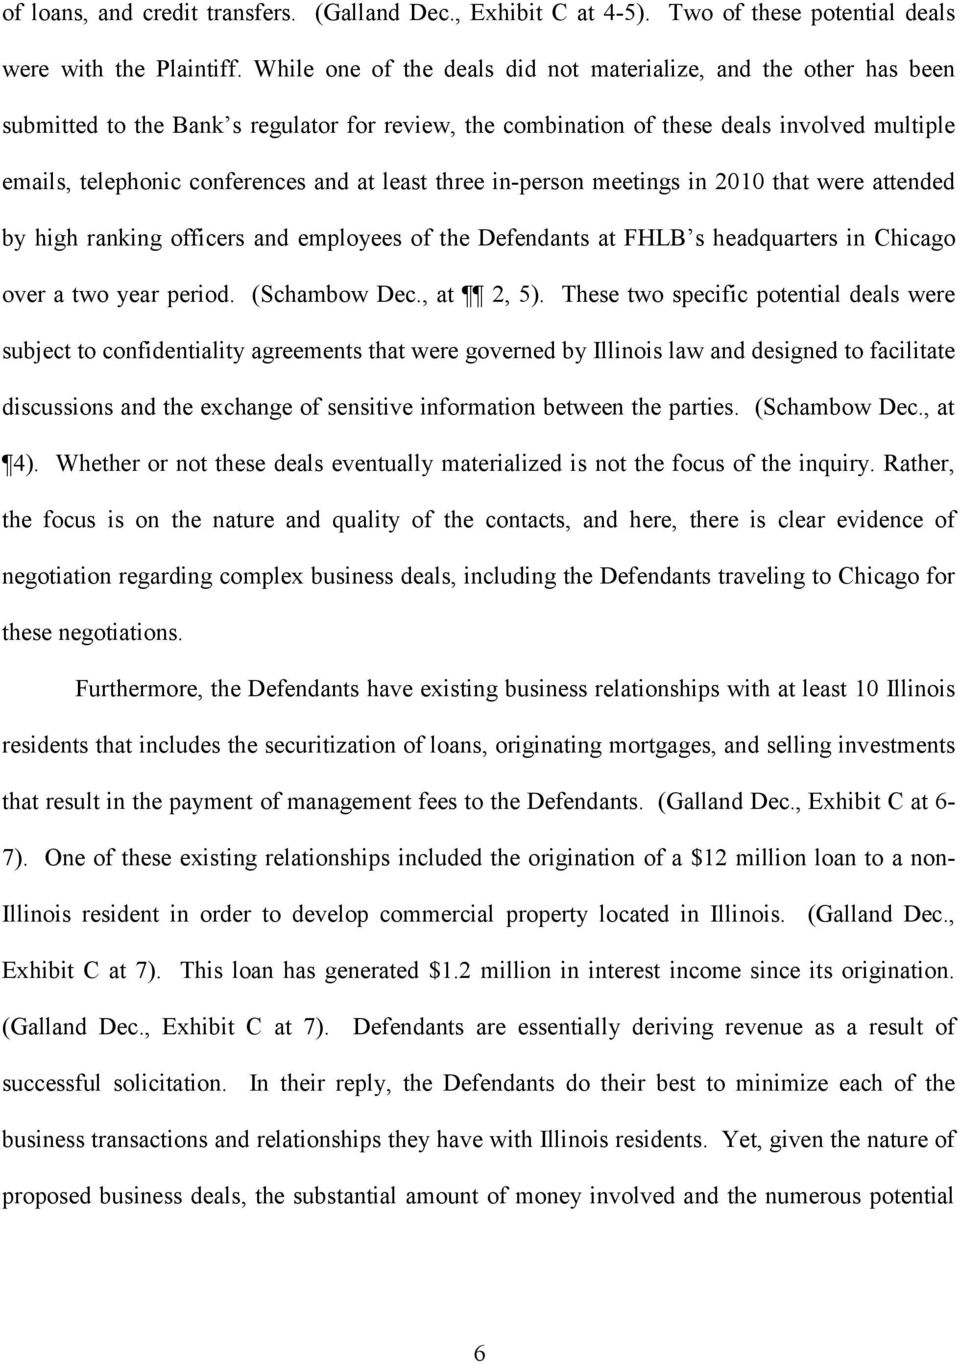 least three in person meetings in 2010 that were attended by high ranking officers and employees of the Defendants at FHLB s headquarters in Chicago over a two year period. (Schambow Dec., at 2, 5).